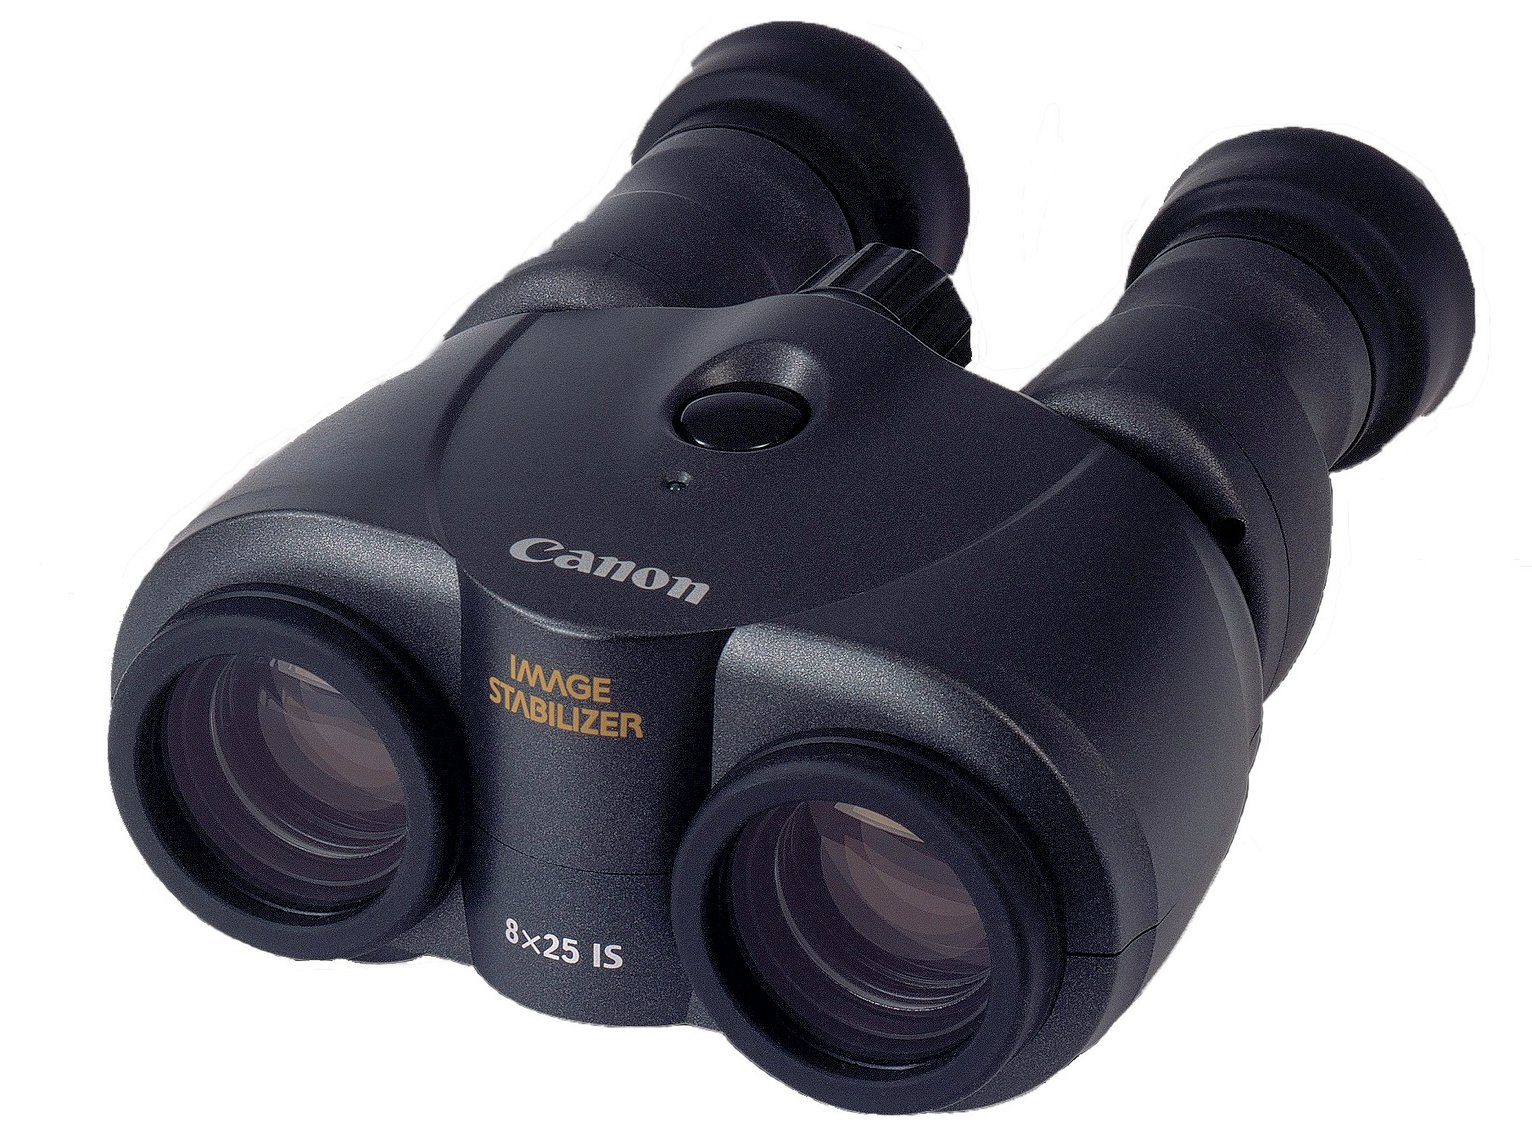 Canon 8 x 25 IS Binoculars from canon